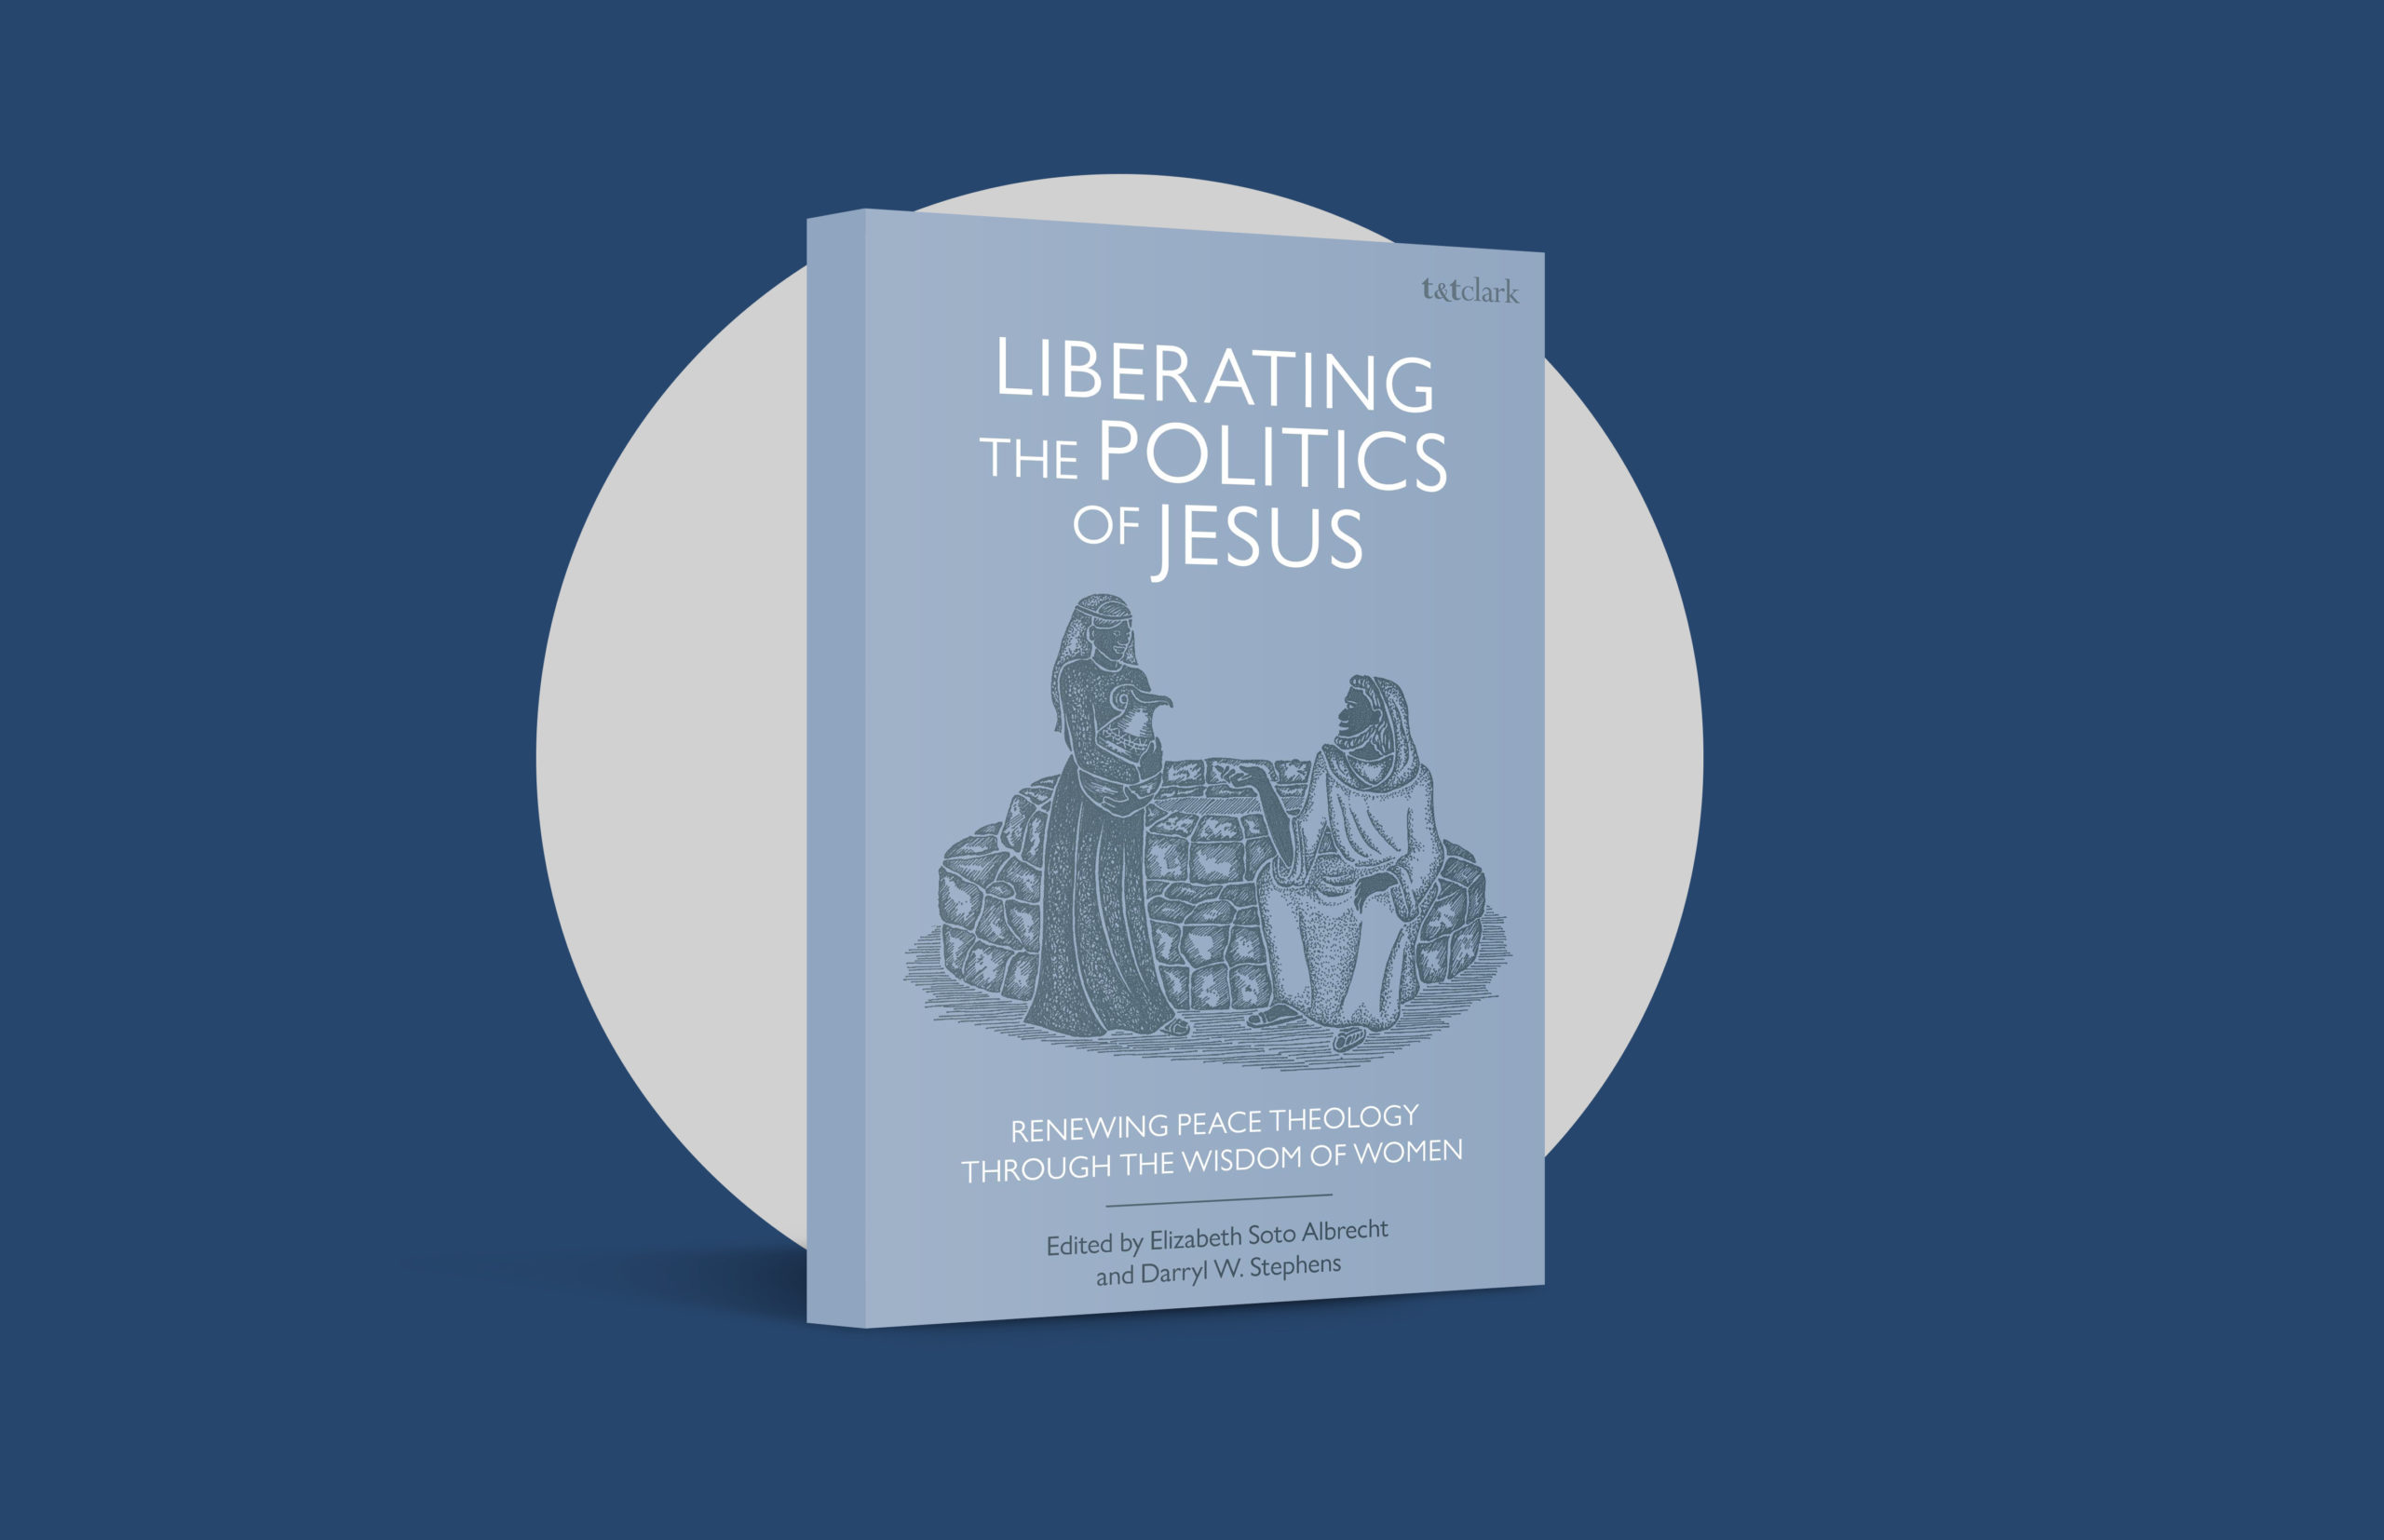 Liberating the Politics of Jesus: Renewing Peace Theology Through the Wisdom of Women, edited by Elizabeth Soto Albrecht and Darryl W. Stephens (T&T Clark, 2020)